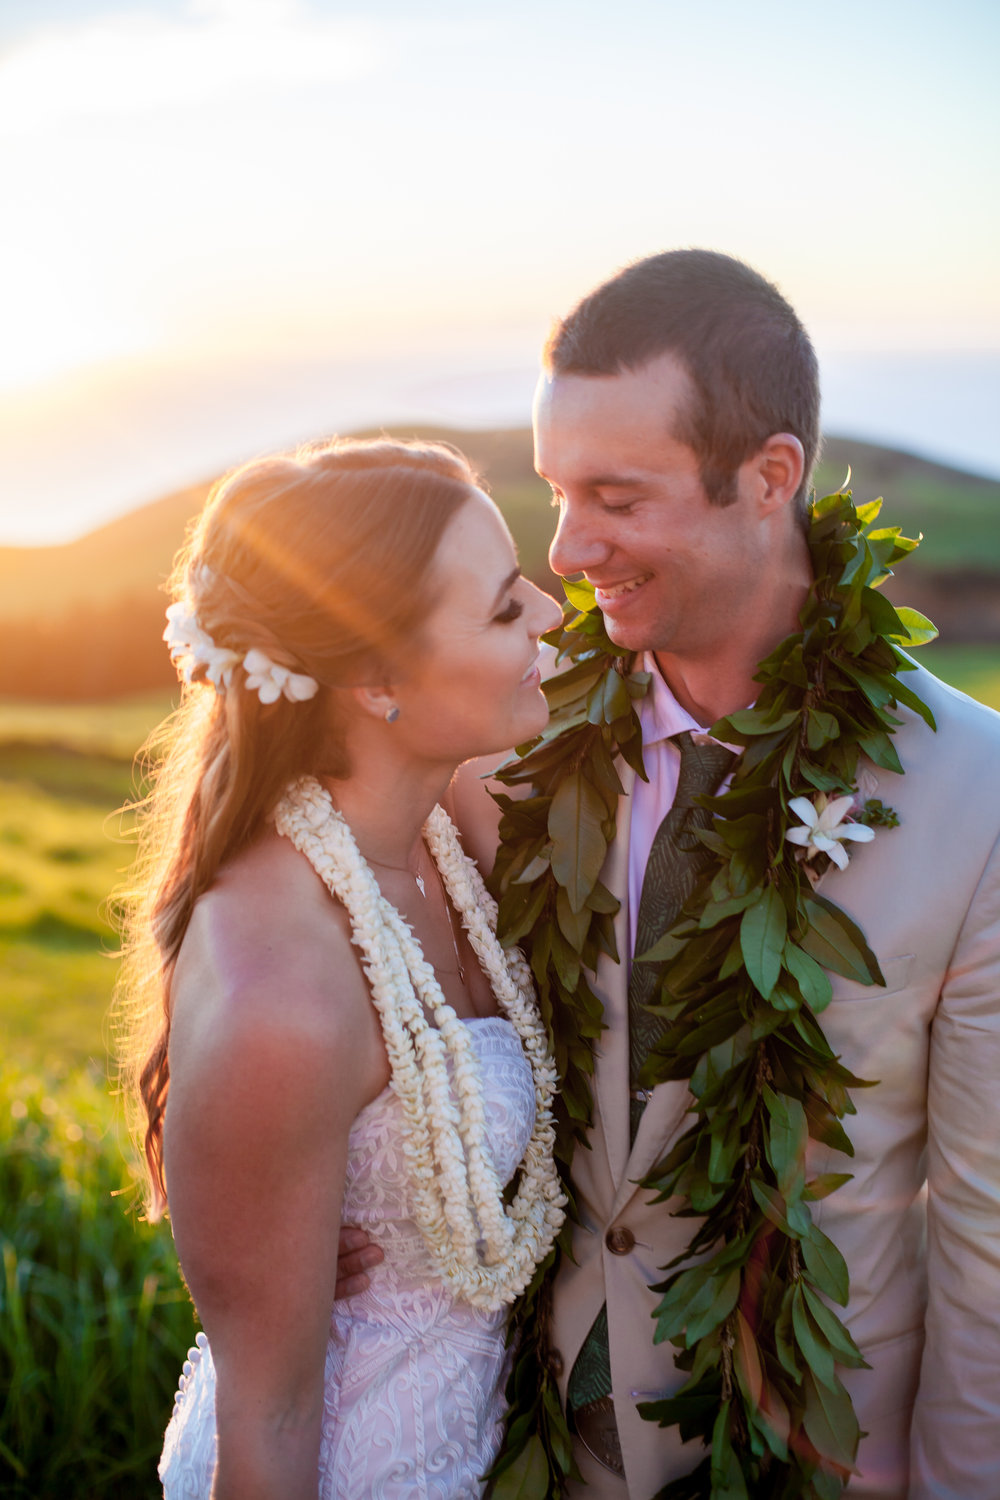 big island hawaii kahua ranch wedding © kelilina photography 20170106175944.jpg